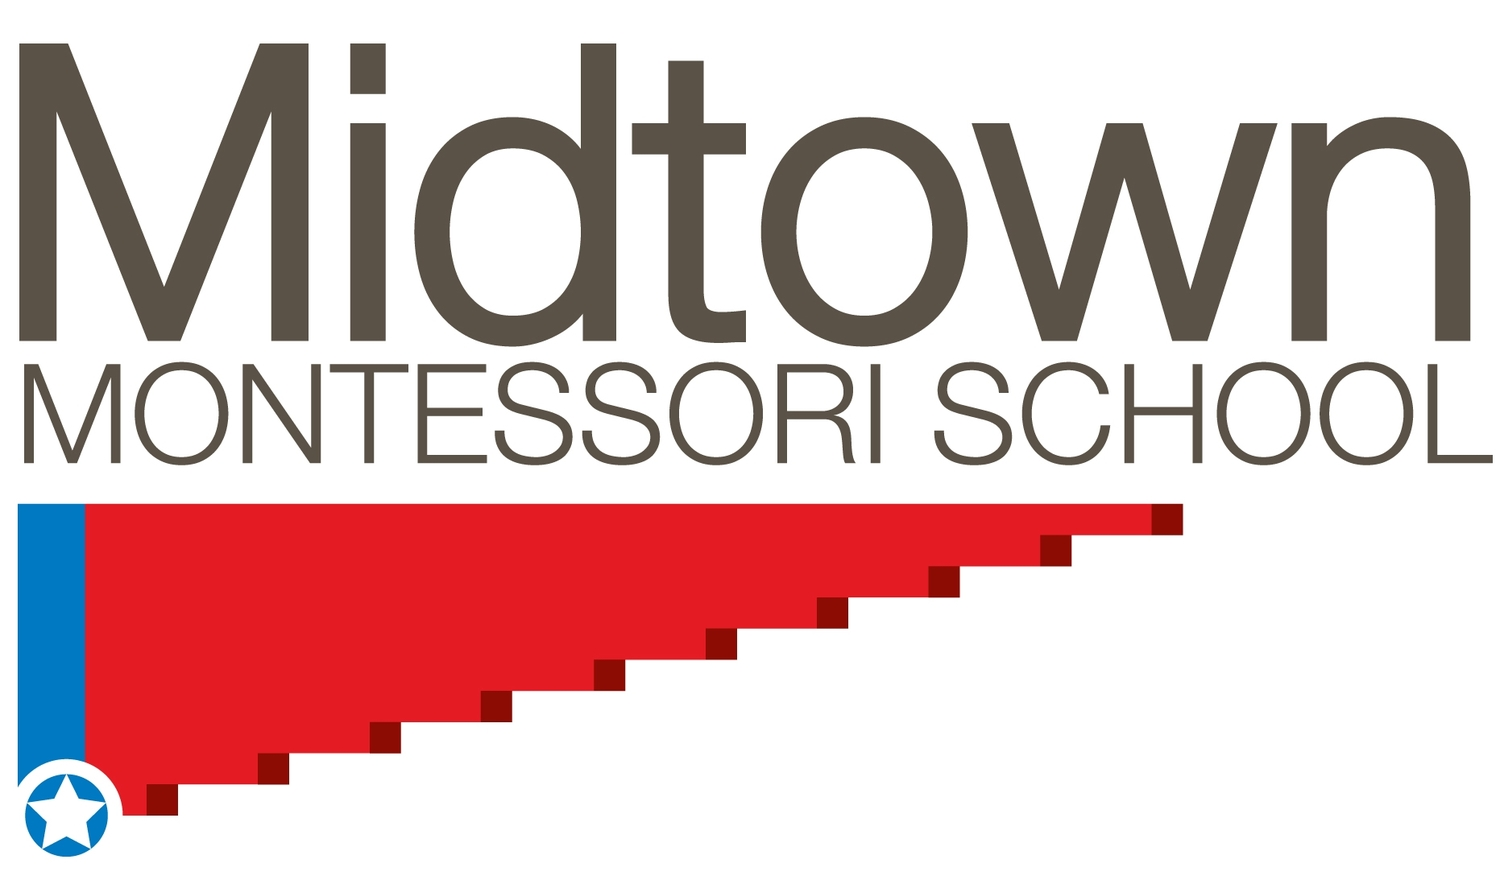 Midtown Montessori School